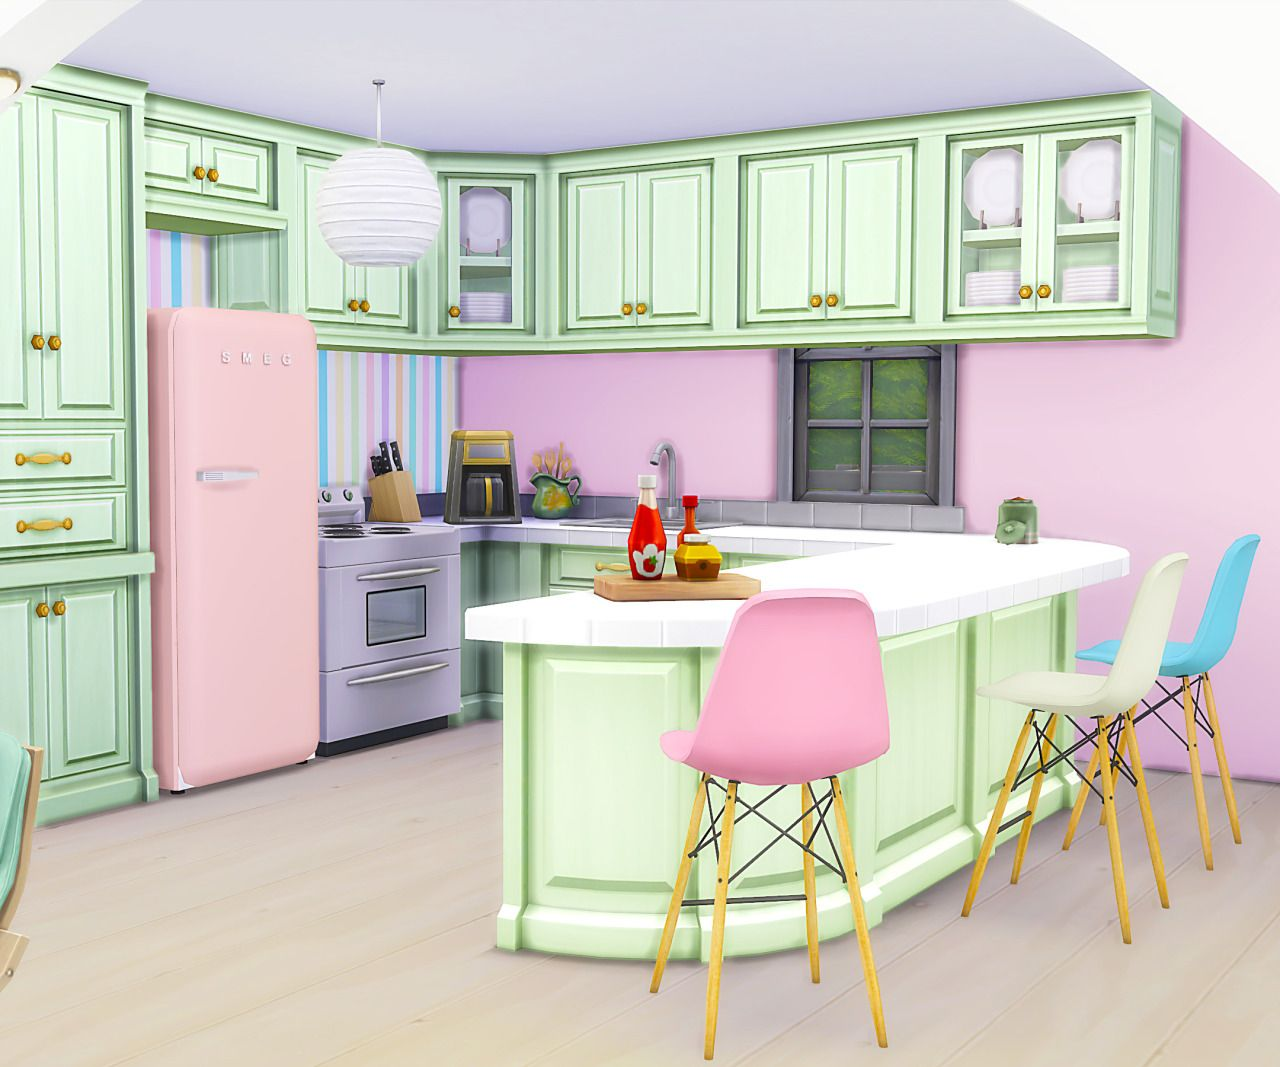 Kitchen Interior With Pink Furniture And Tiles Stock: My Sims 4 Blog: Pink Spring House, Kitchen Recolors